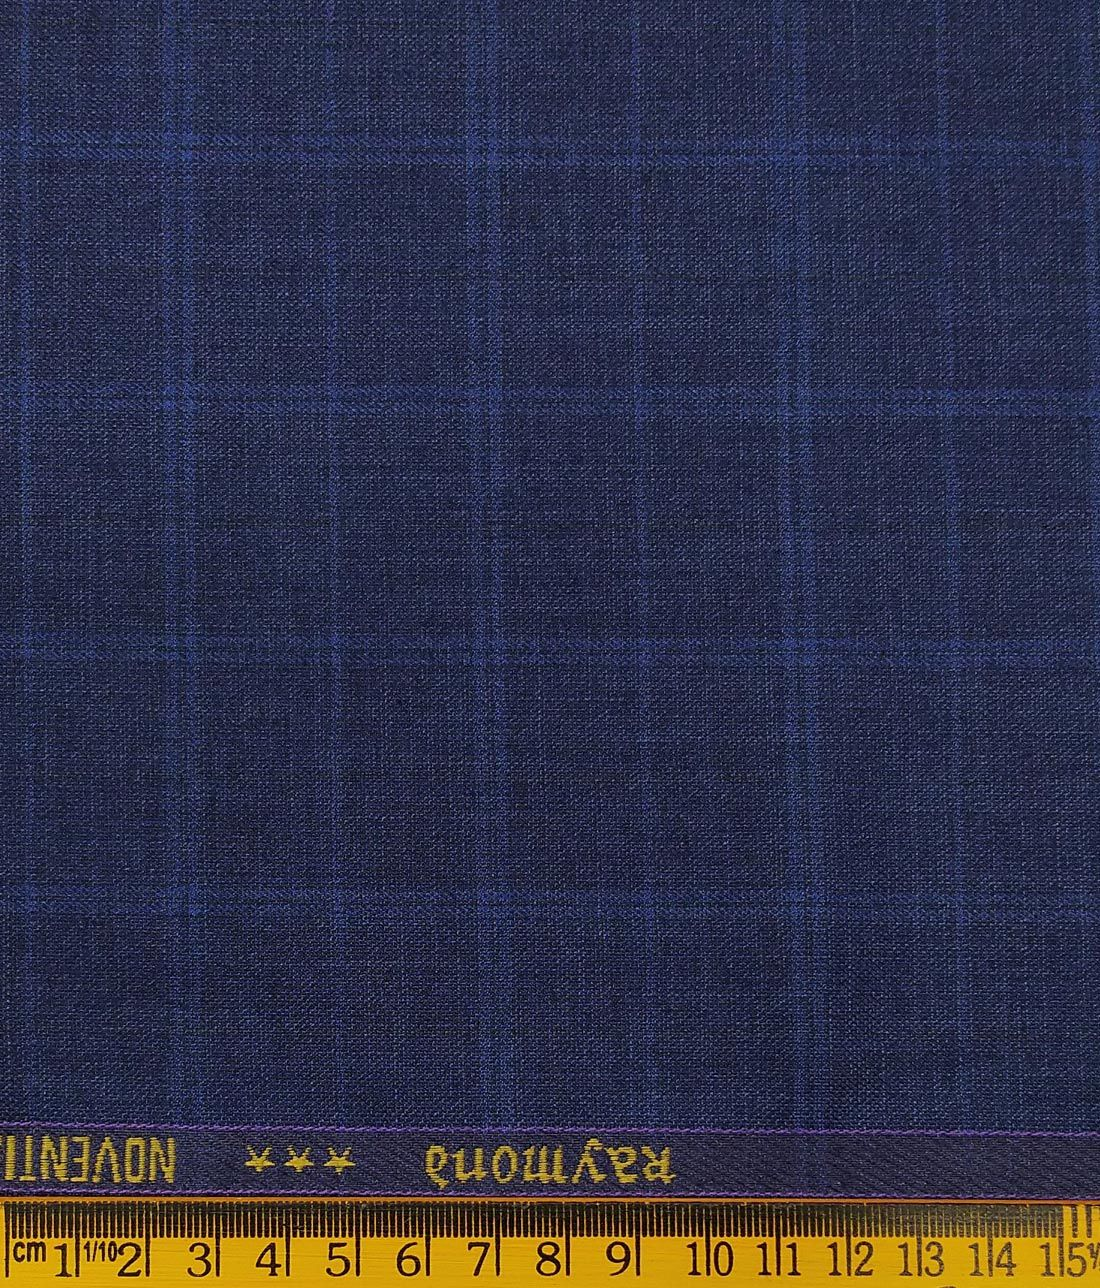 1a48d72d7 Combo of Raymond Dark Blue Broad Checks Trouser Fabric With Bombay Rayon  White 100% Cotton Blue Paisley Print Shirt Fabric (Unstitched)